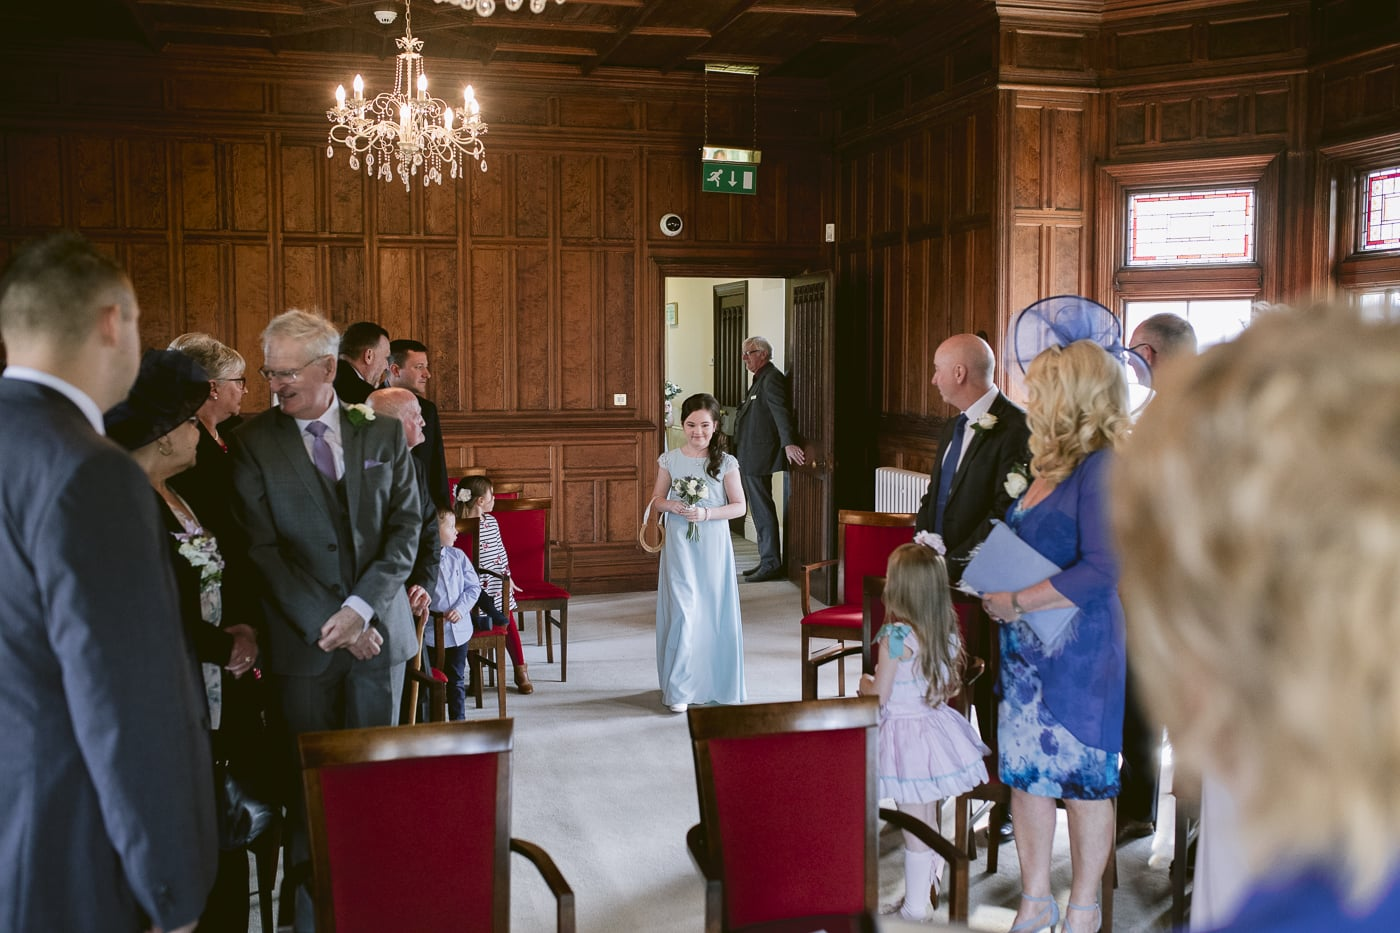 Brides maid walking down the aisle at guests at Carlisle Registry office